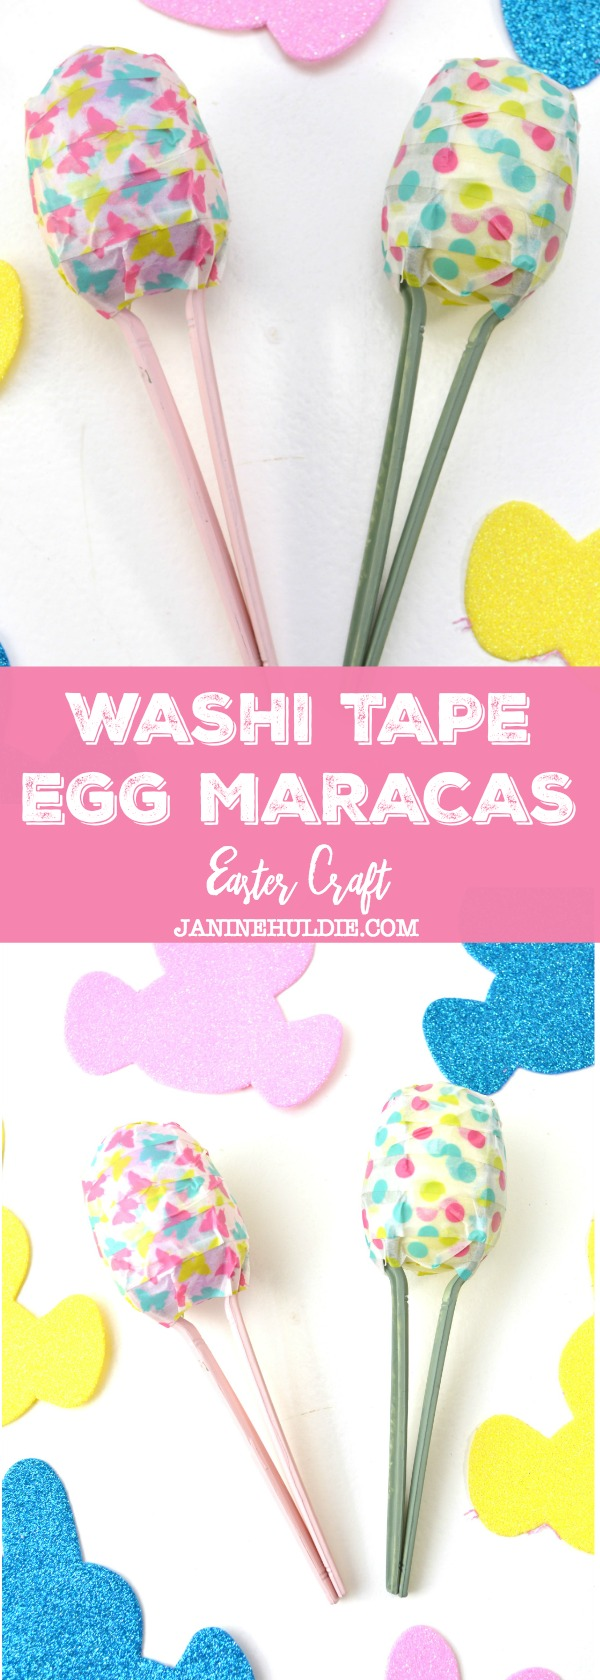 Washi Tape Egg Maracas Craft